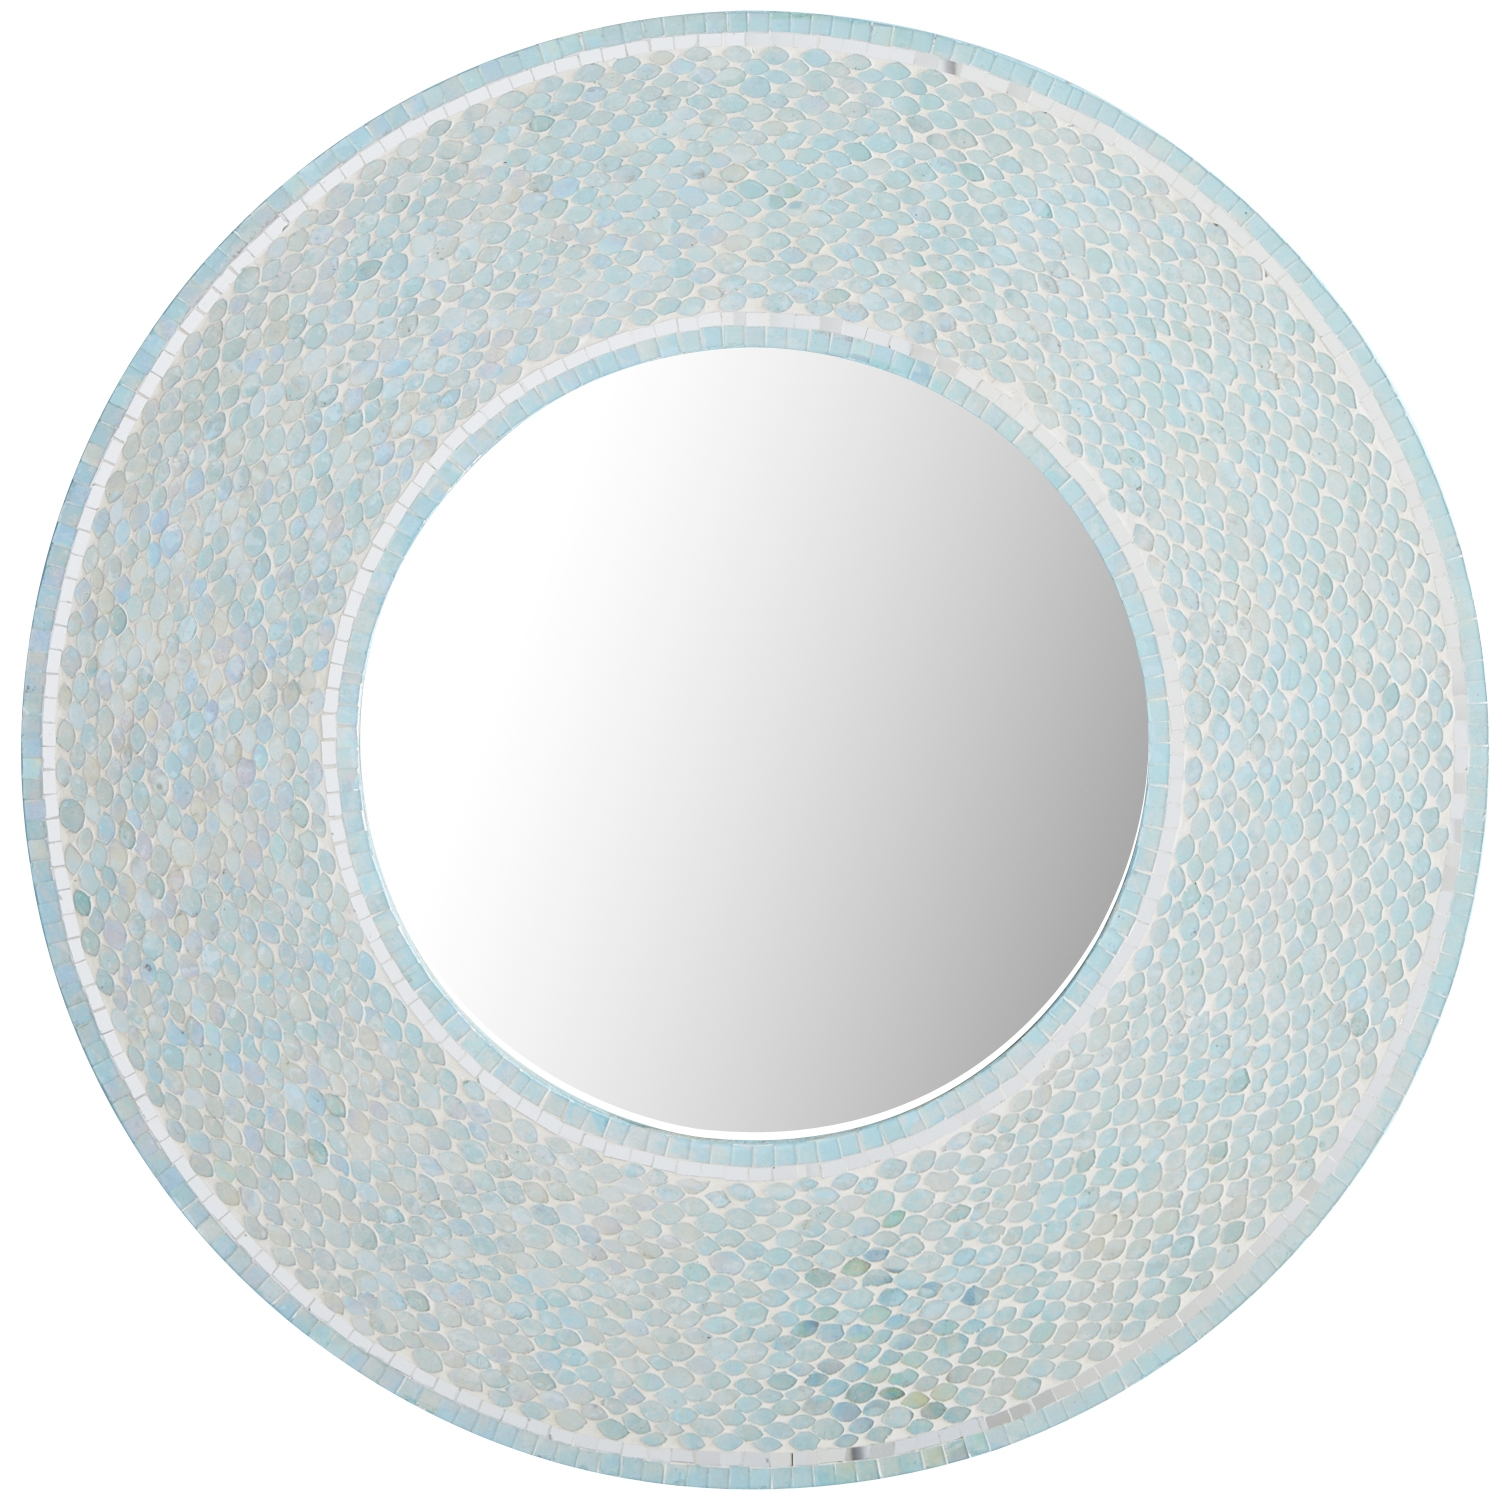 Champagne Mirror Aqua Round Mirrors And Mosaics Throughout Blue Round Mirror (Image 3 of 15)